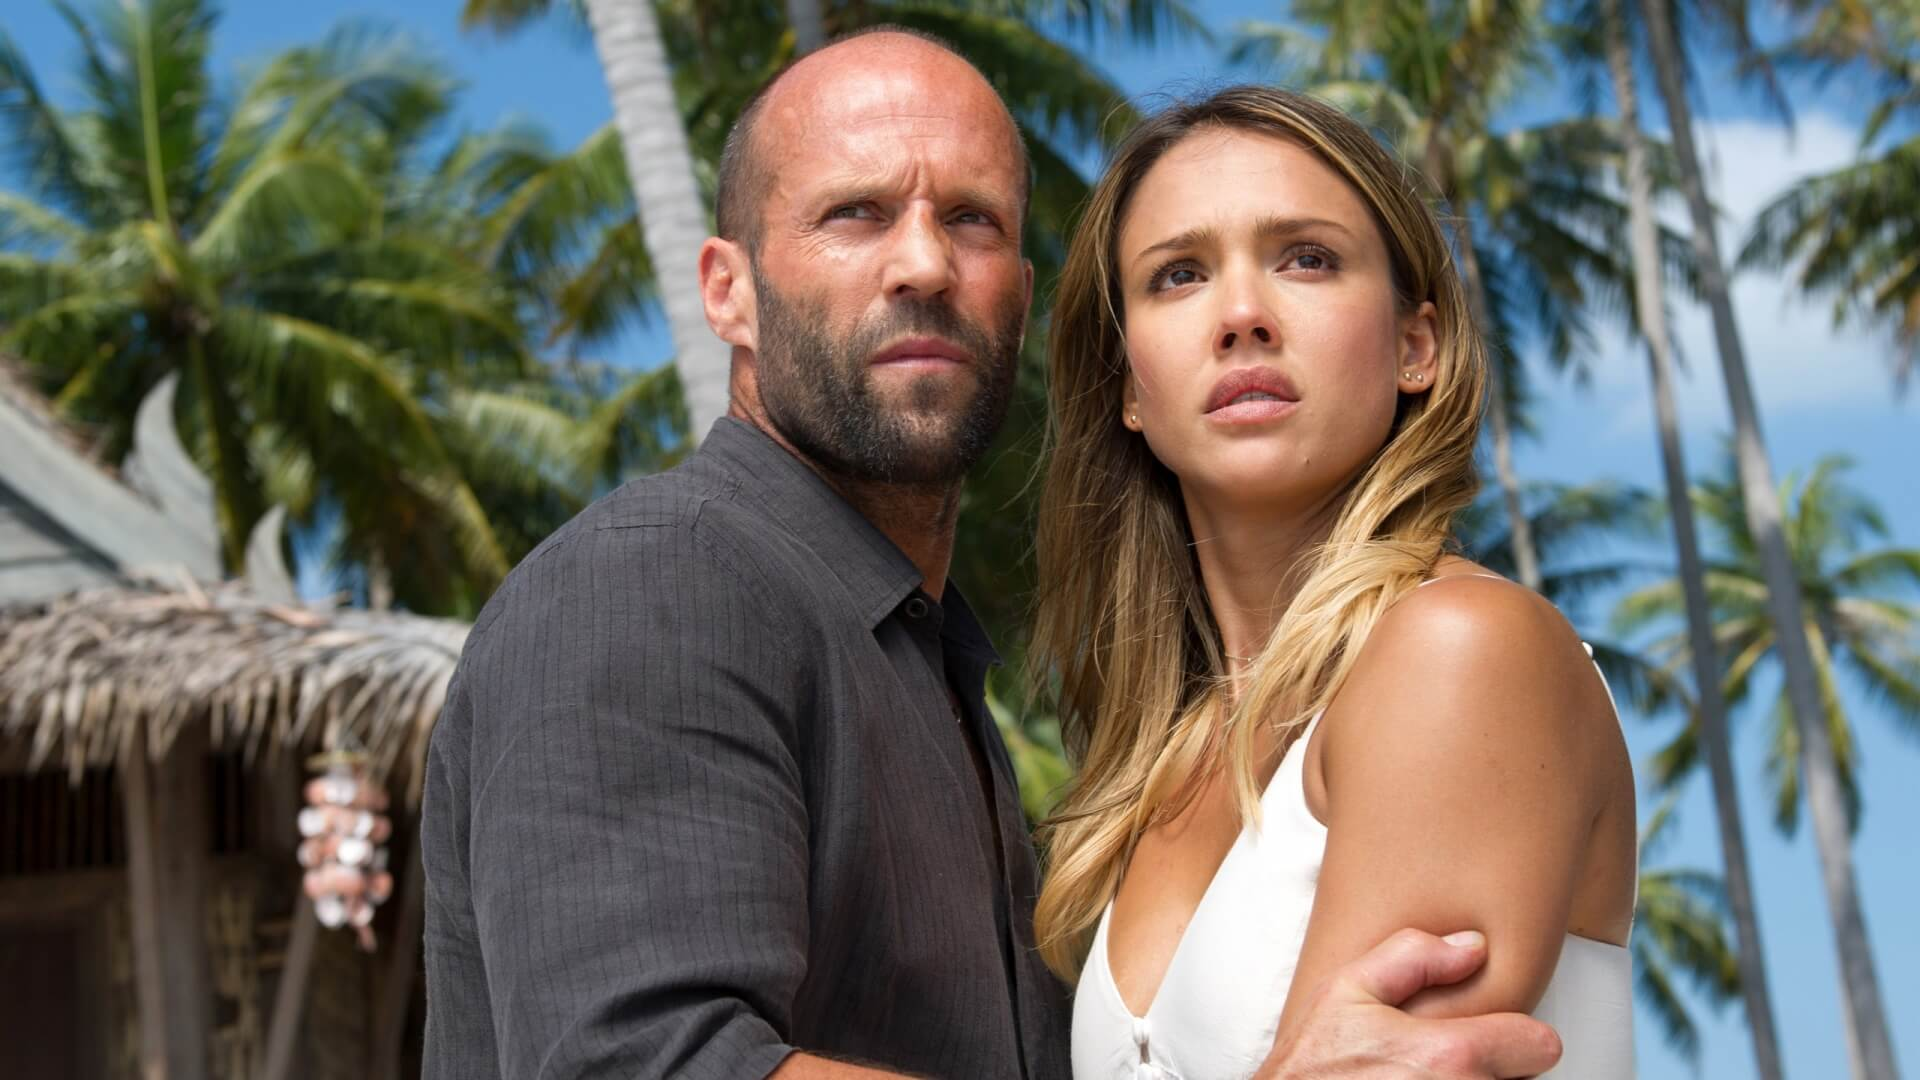 mechanic_resurrection_jason_statham_jessica_alba-1920x1080